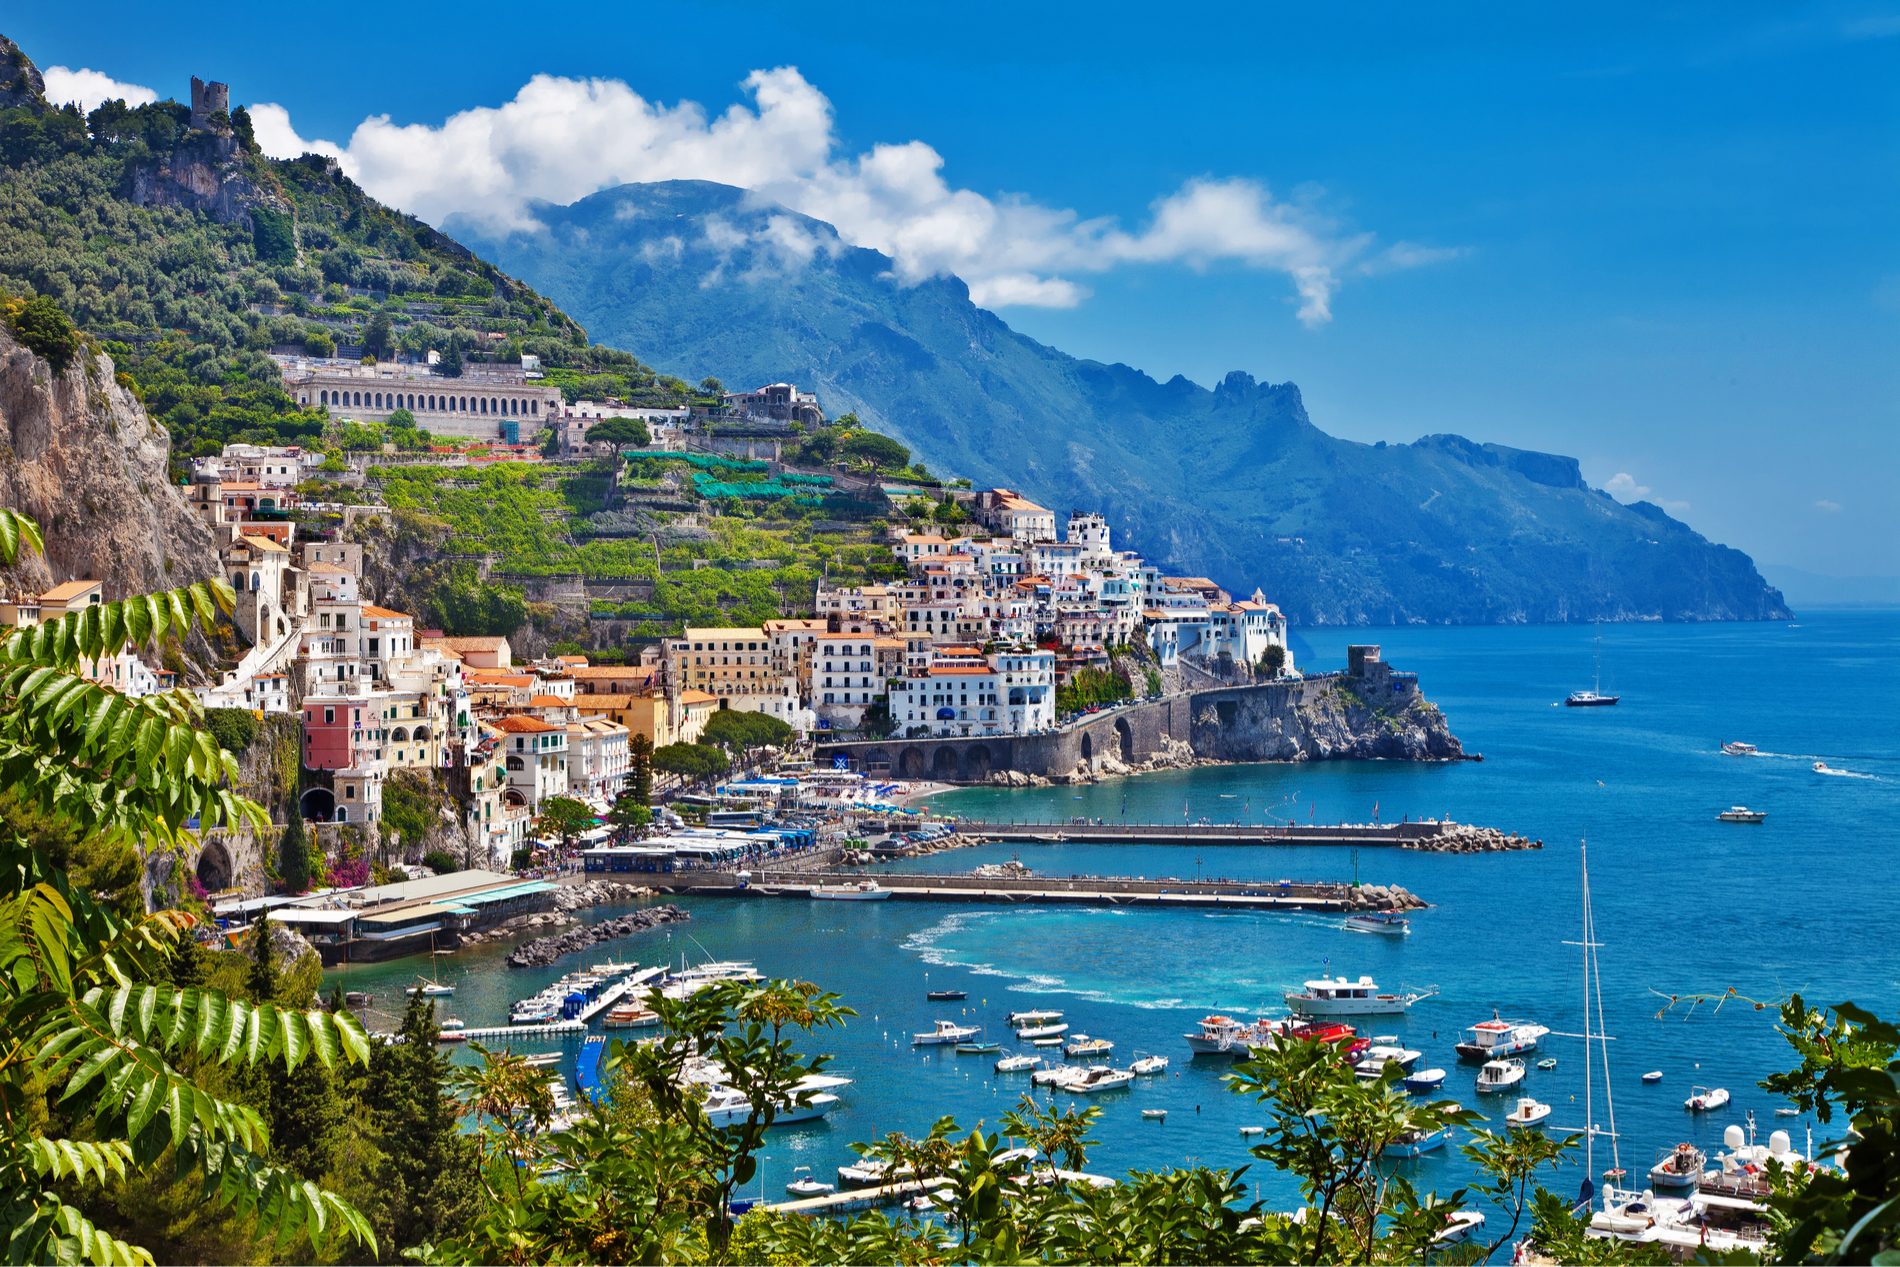 Maltese nights & Greek Isles - 12-Day Cruise From Rome to Piraeus (Athens) Aboard the Seabourn Odyssey